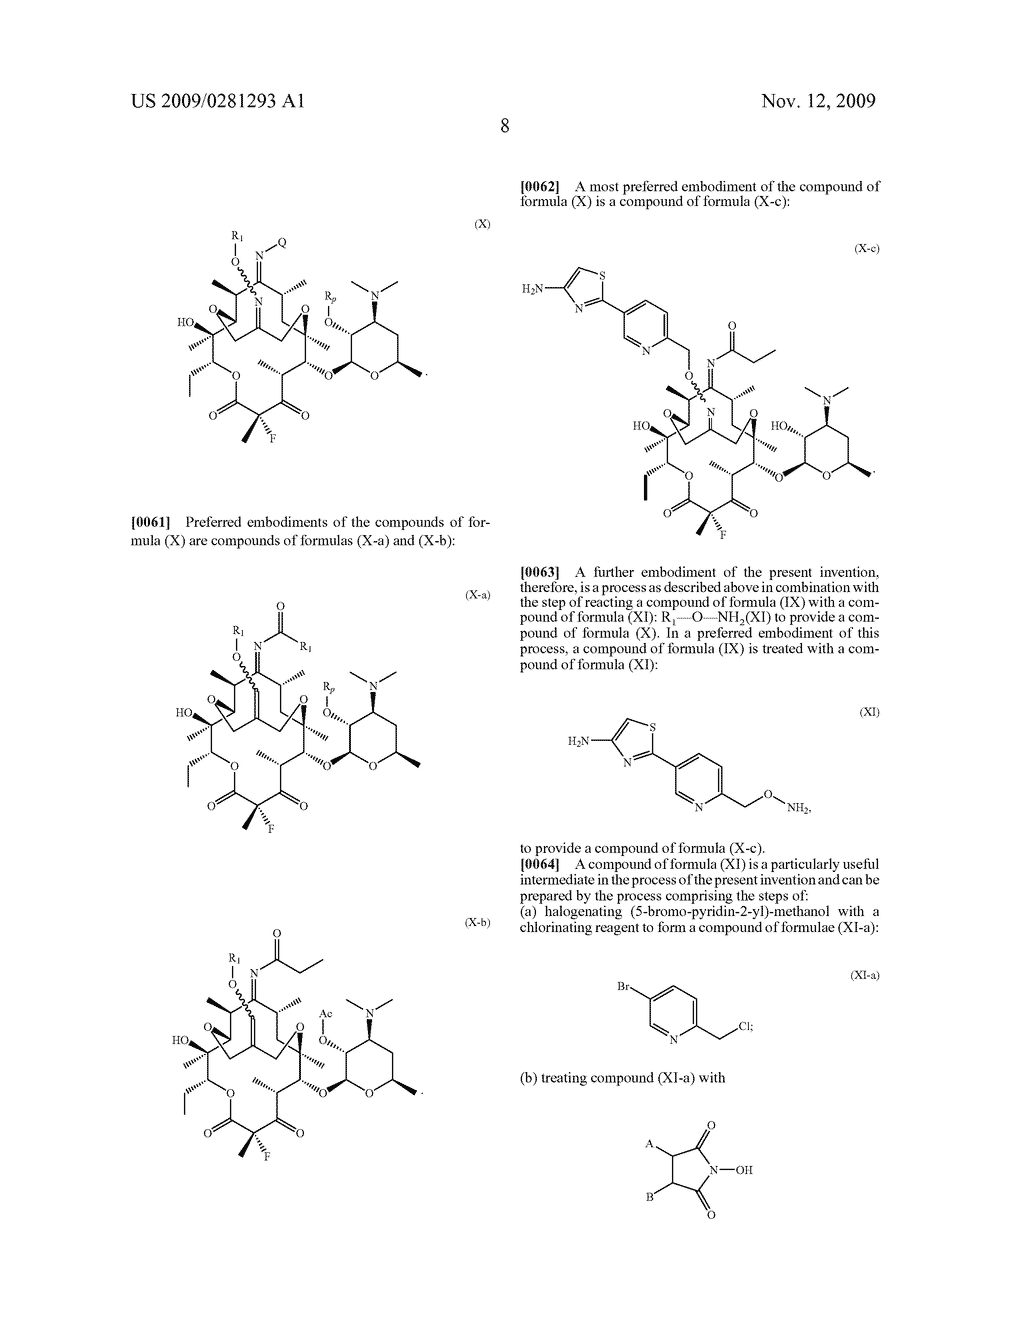 PROCESSES FOR THE PREPARATION OF 2 FLUORO 6-11 BICYCLIC ERYTHROMYCIN DERIVATIVES - diagram, schematic, and image 09